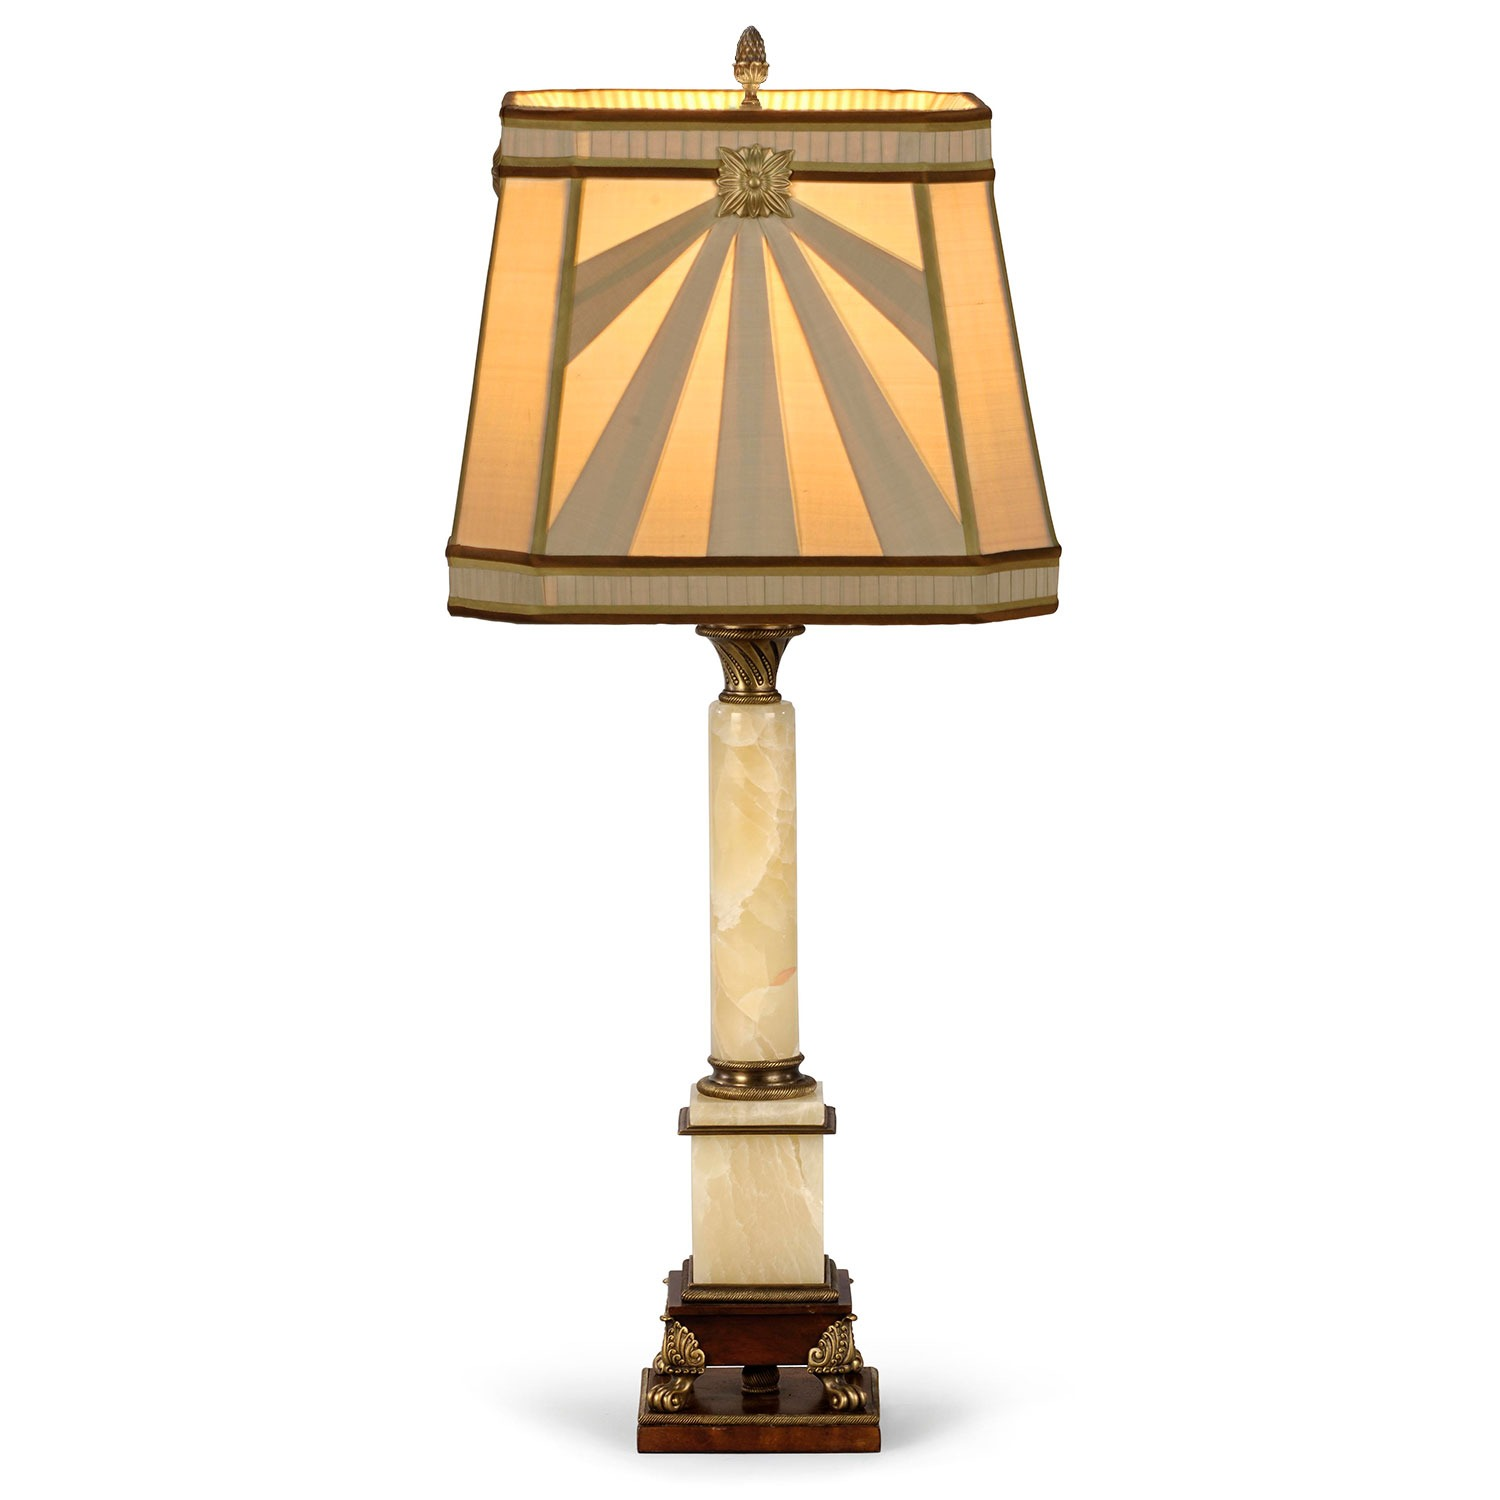 An onyx and brass table lamp